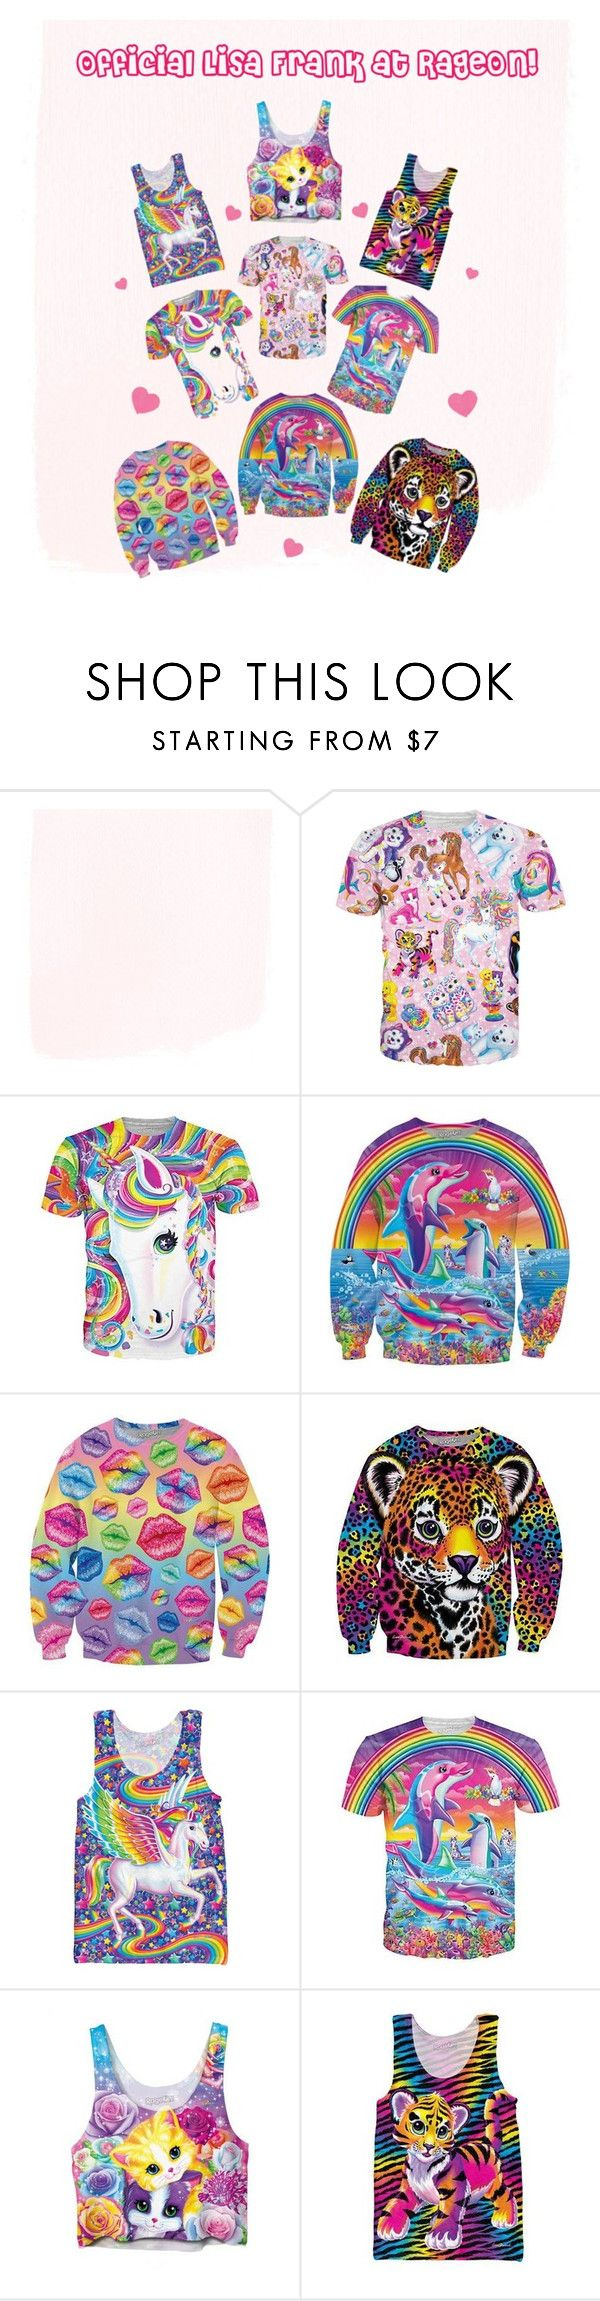 """Official Lisa Frank at RageOn.com!"" by rageon on Polyvore"